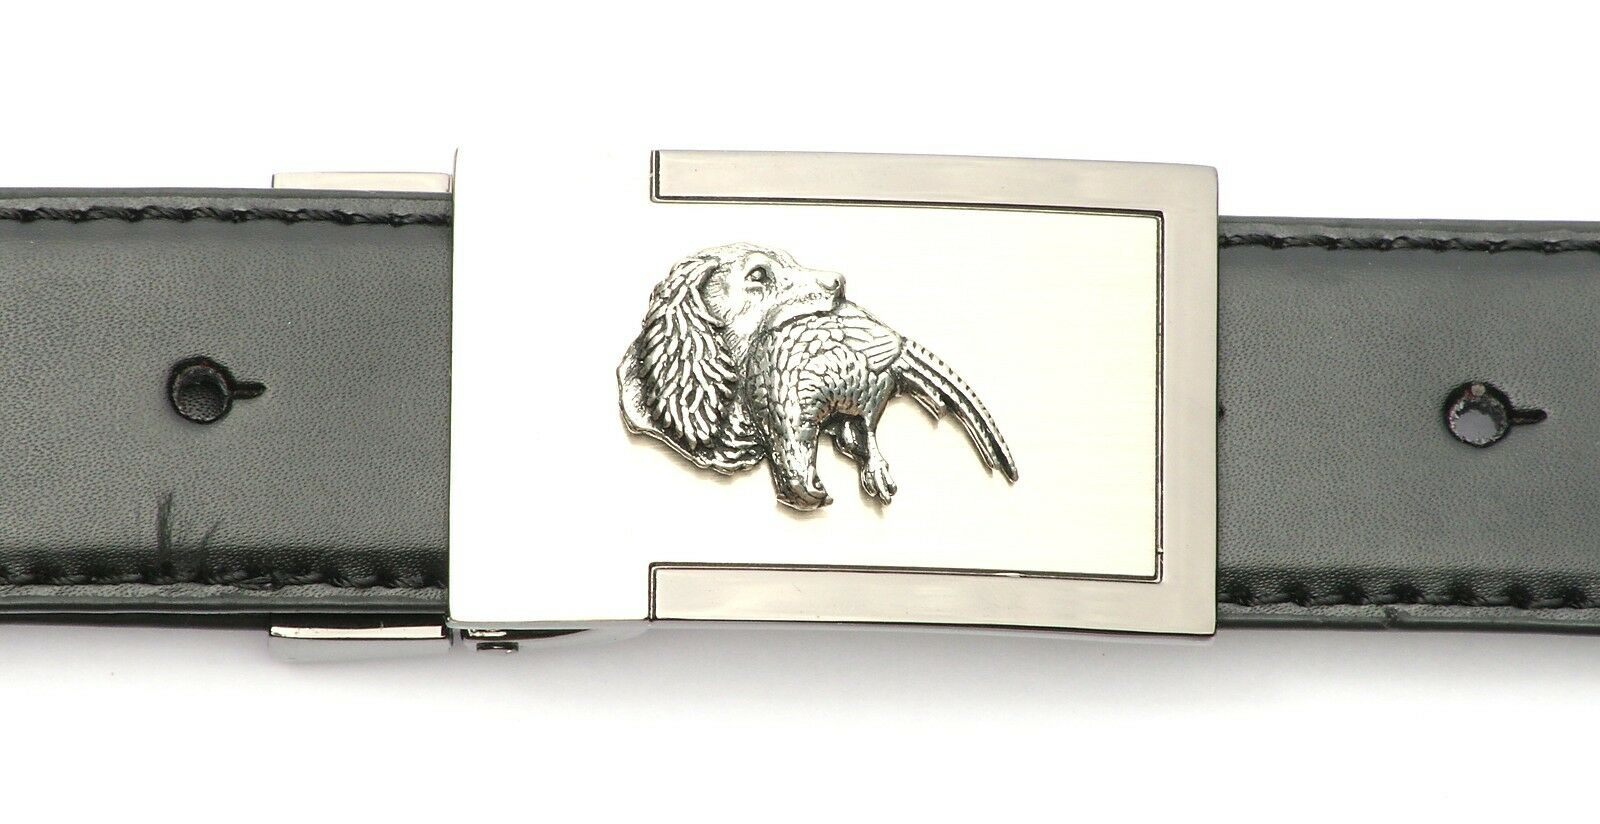 Spaniel n Pheasant Belt Buckle and Leather Belt in Gift Tin Ideal Shooting 338